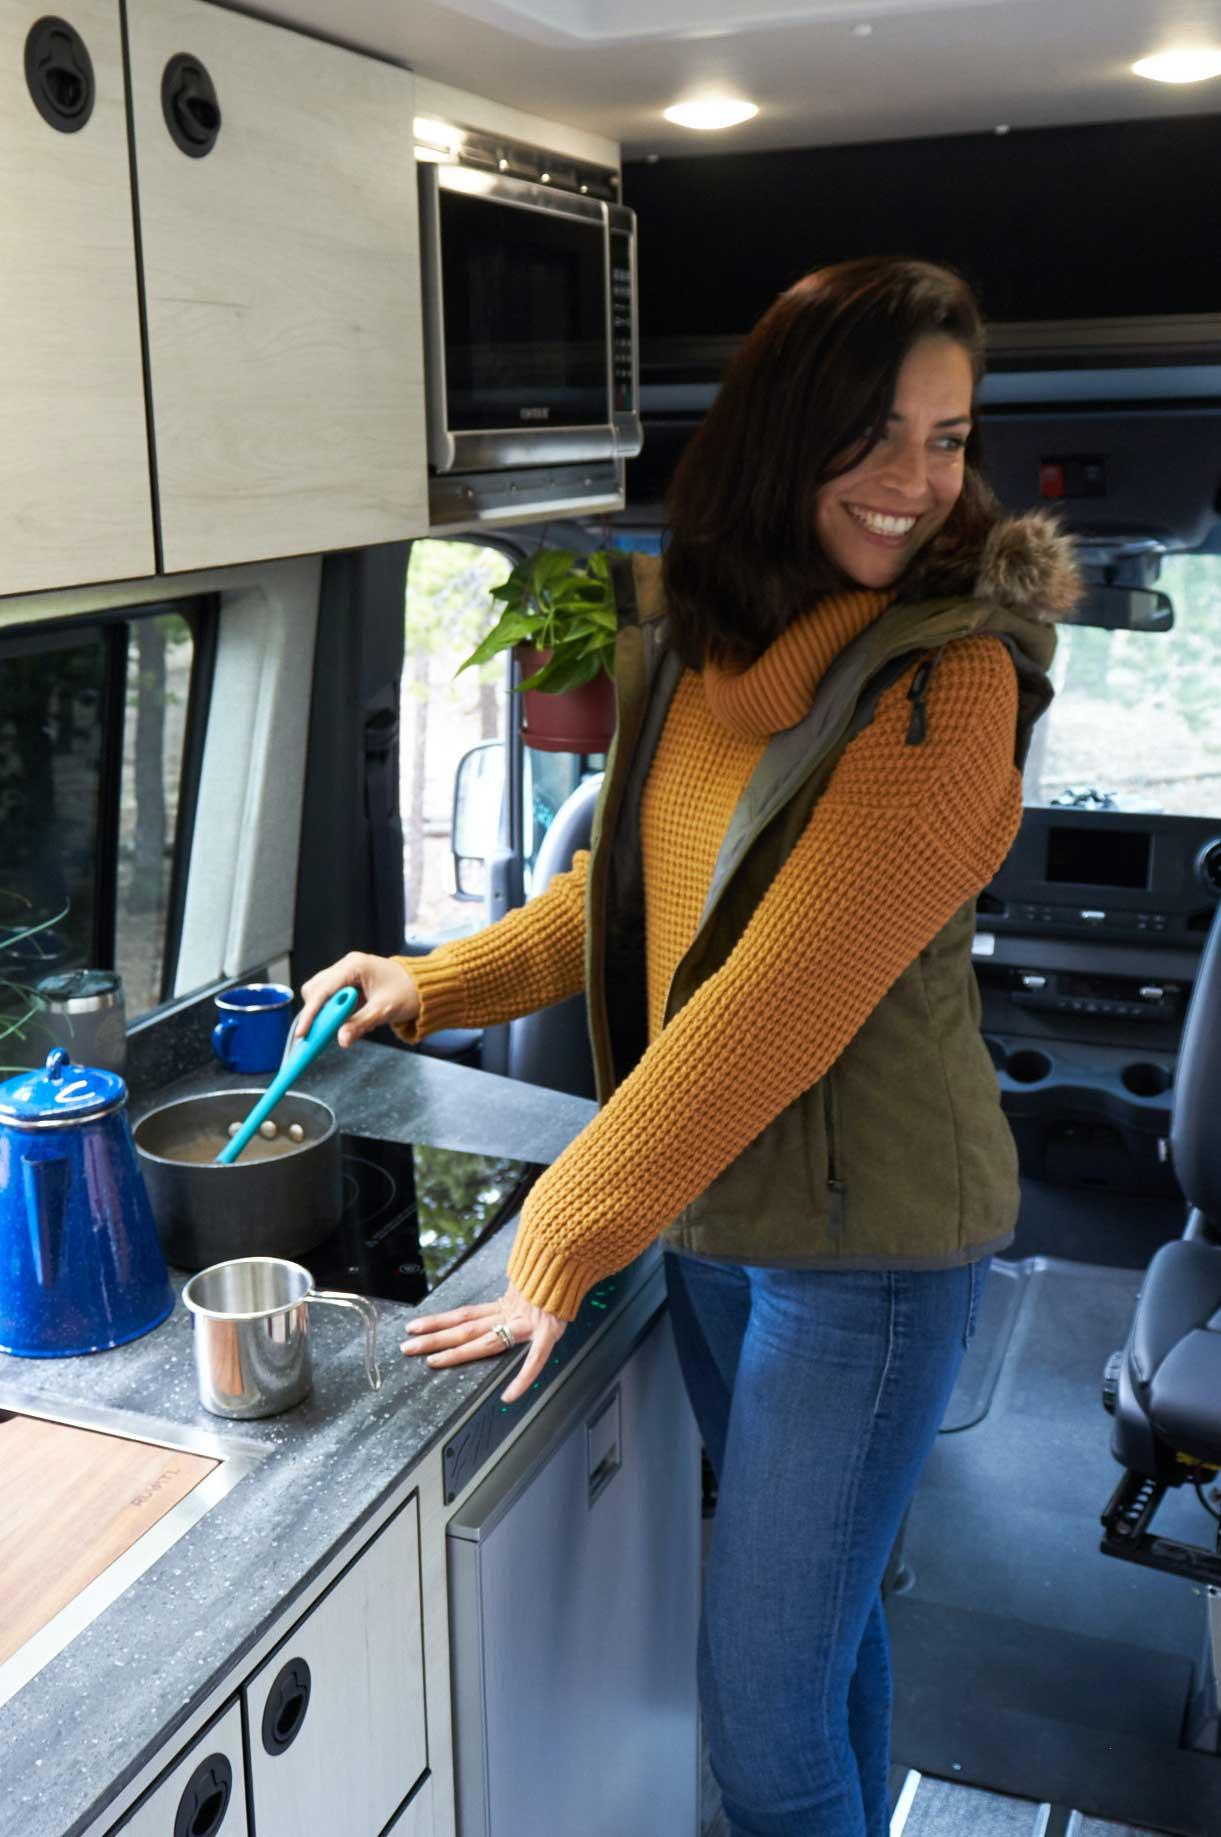 A woman using the kitchen inside a Summit Adventure Van